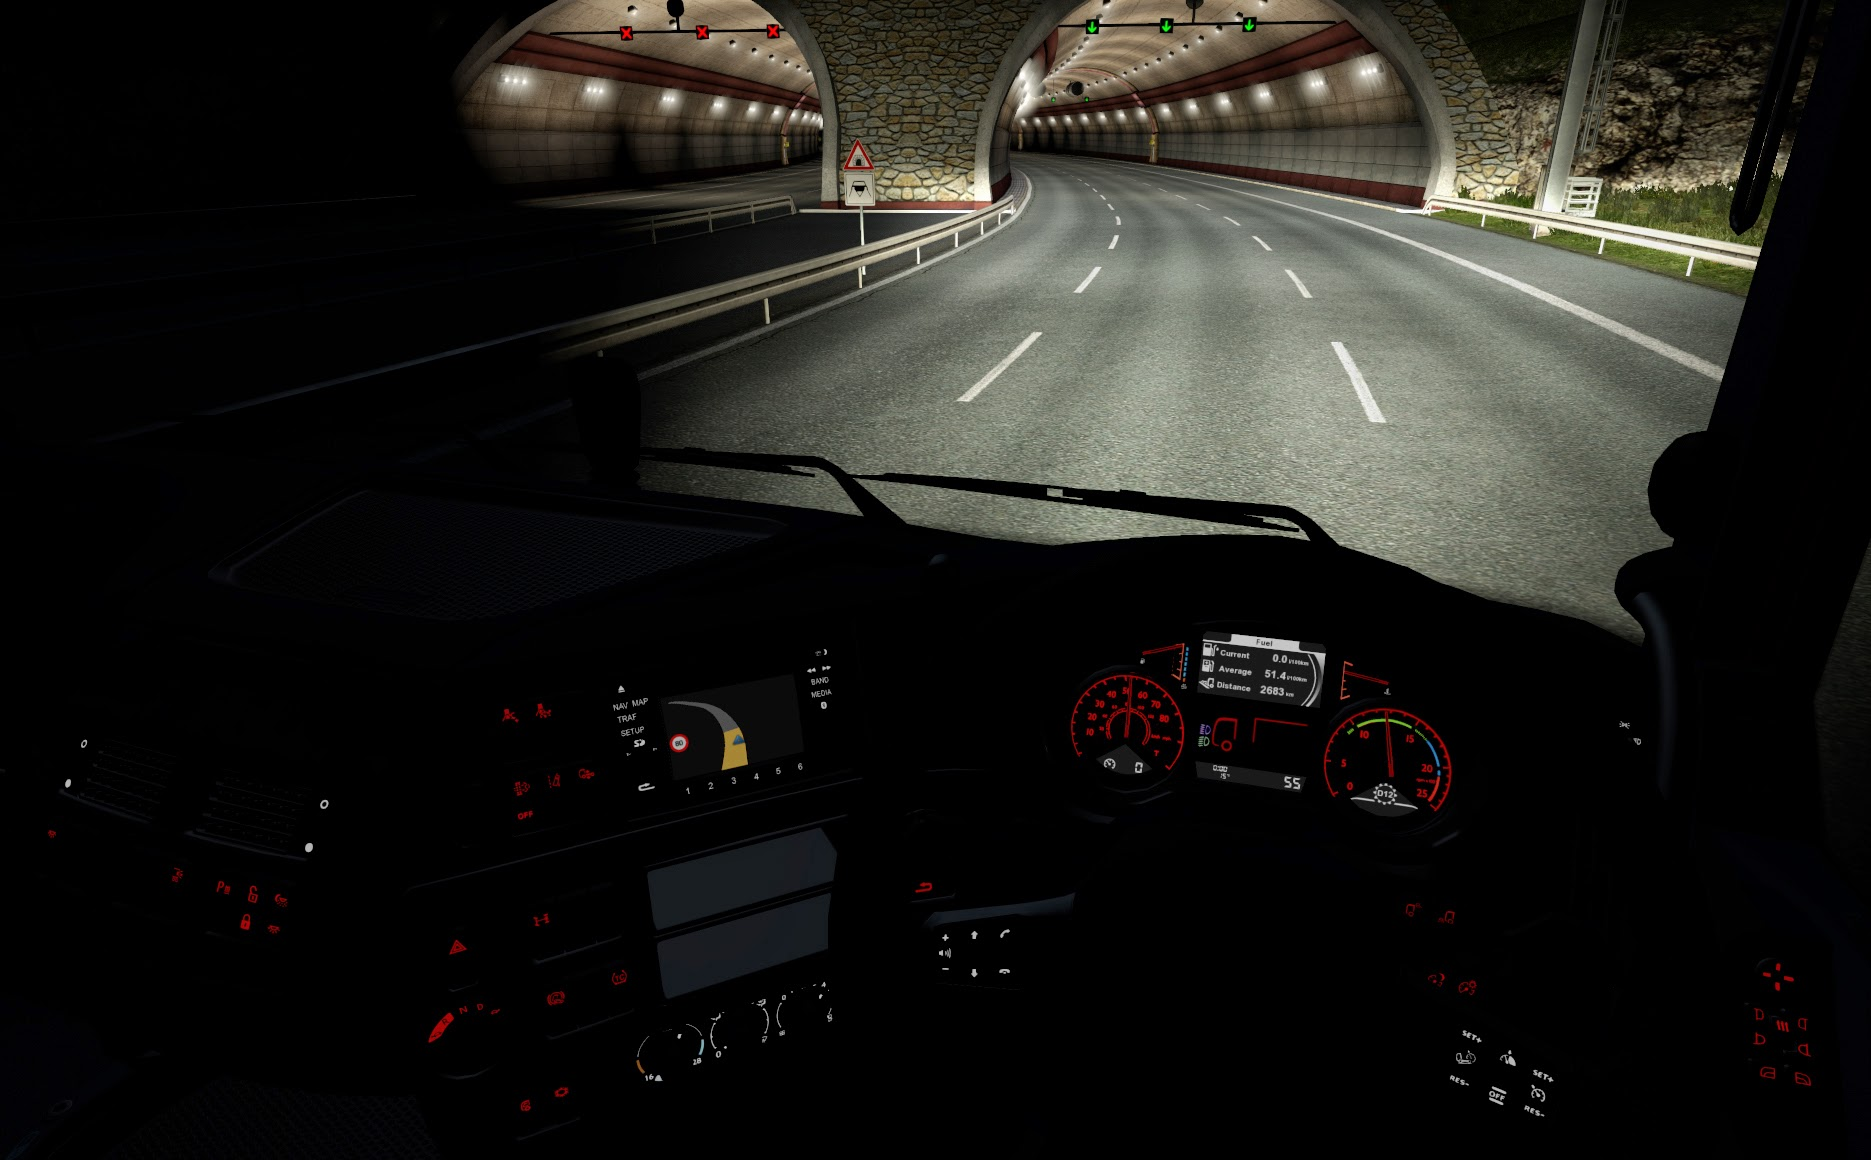 DAF_Euro6_dashboard_at_night.jpg